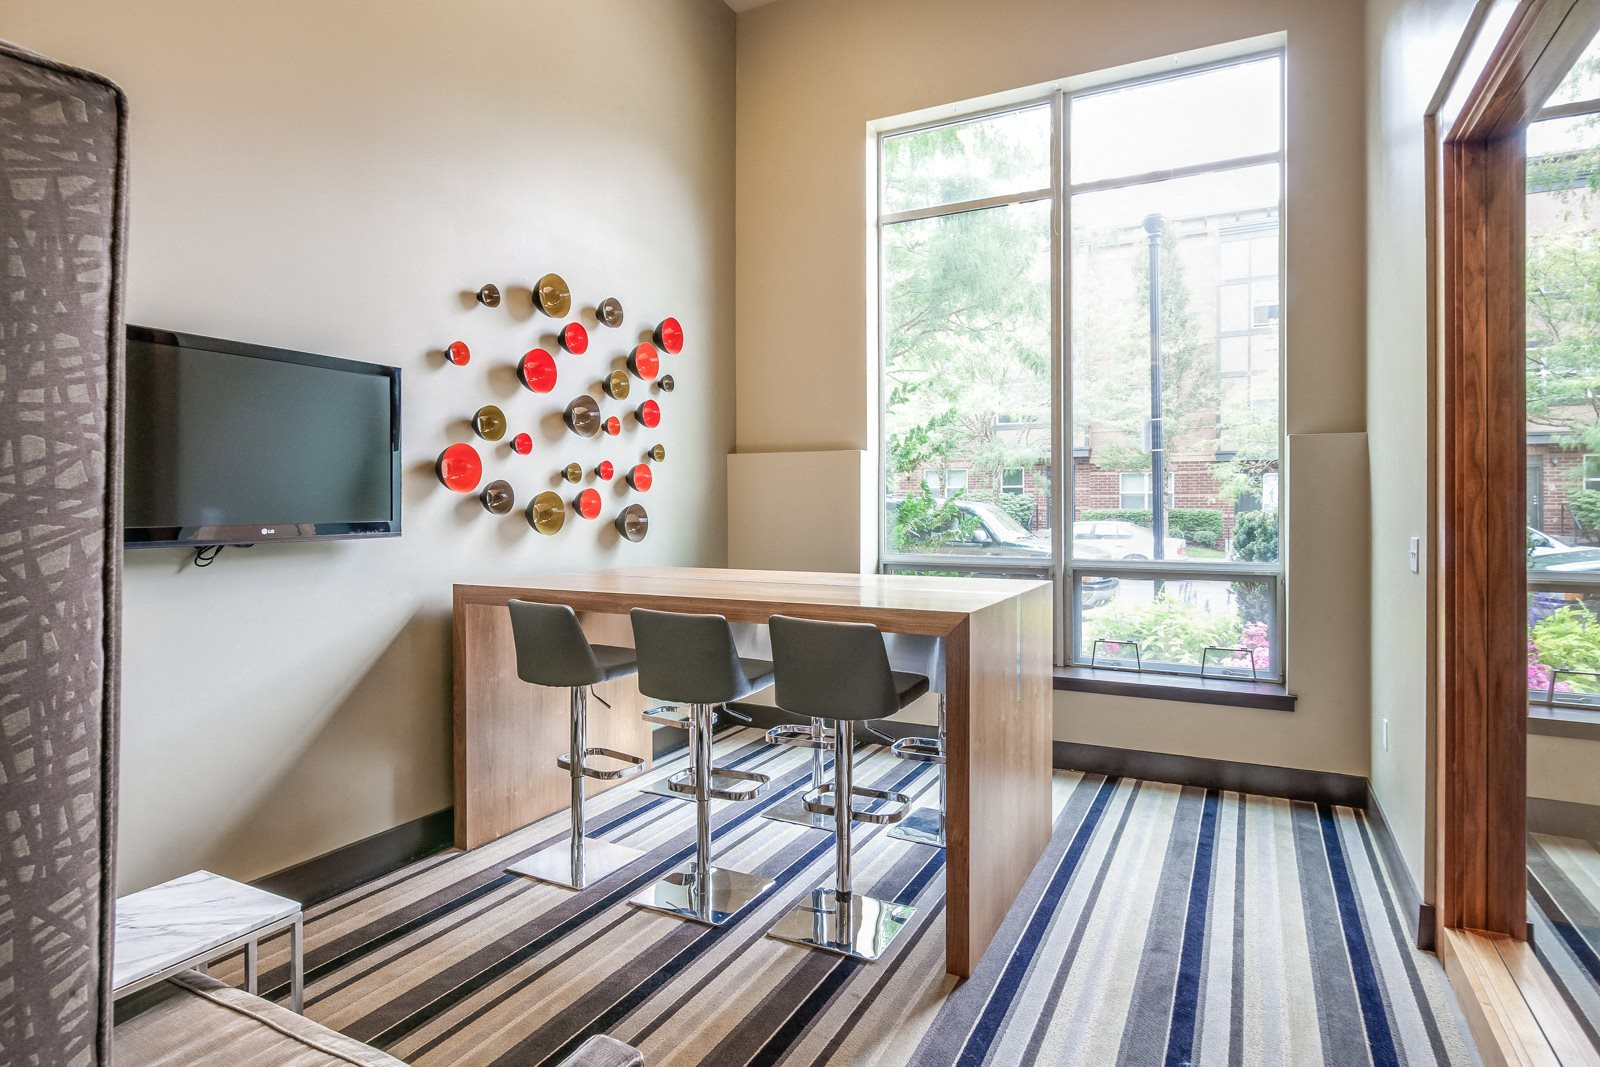 Home Work Space at Platform 14, 1030 NE Orenco Station Pkwy, OR